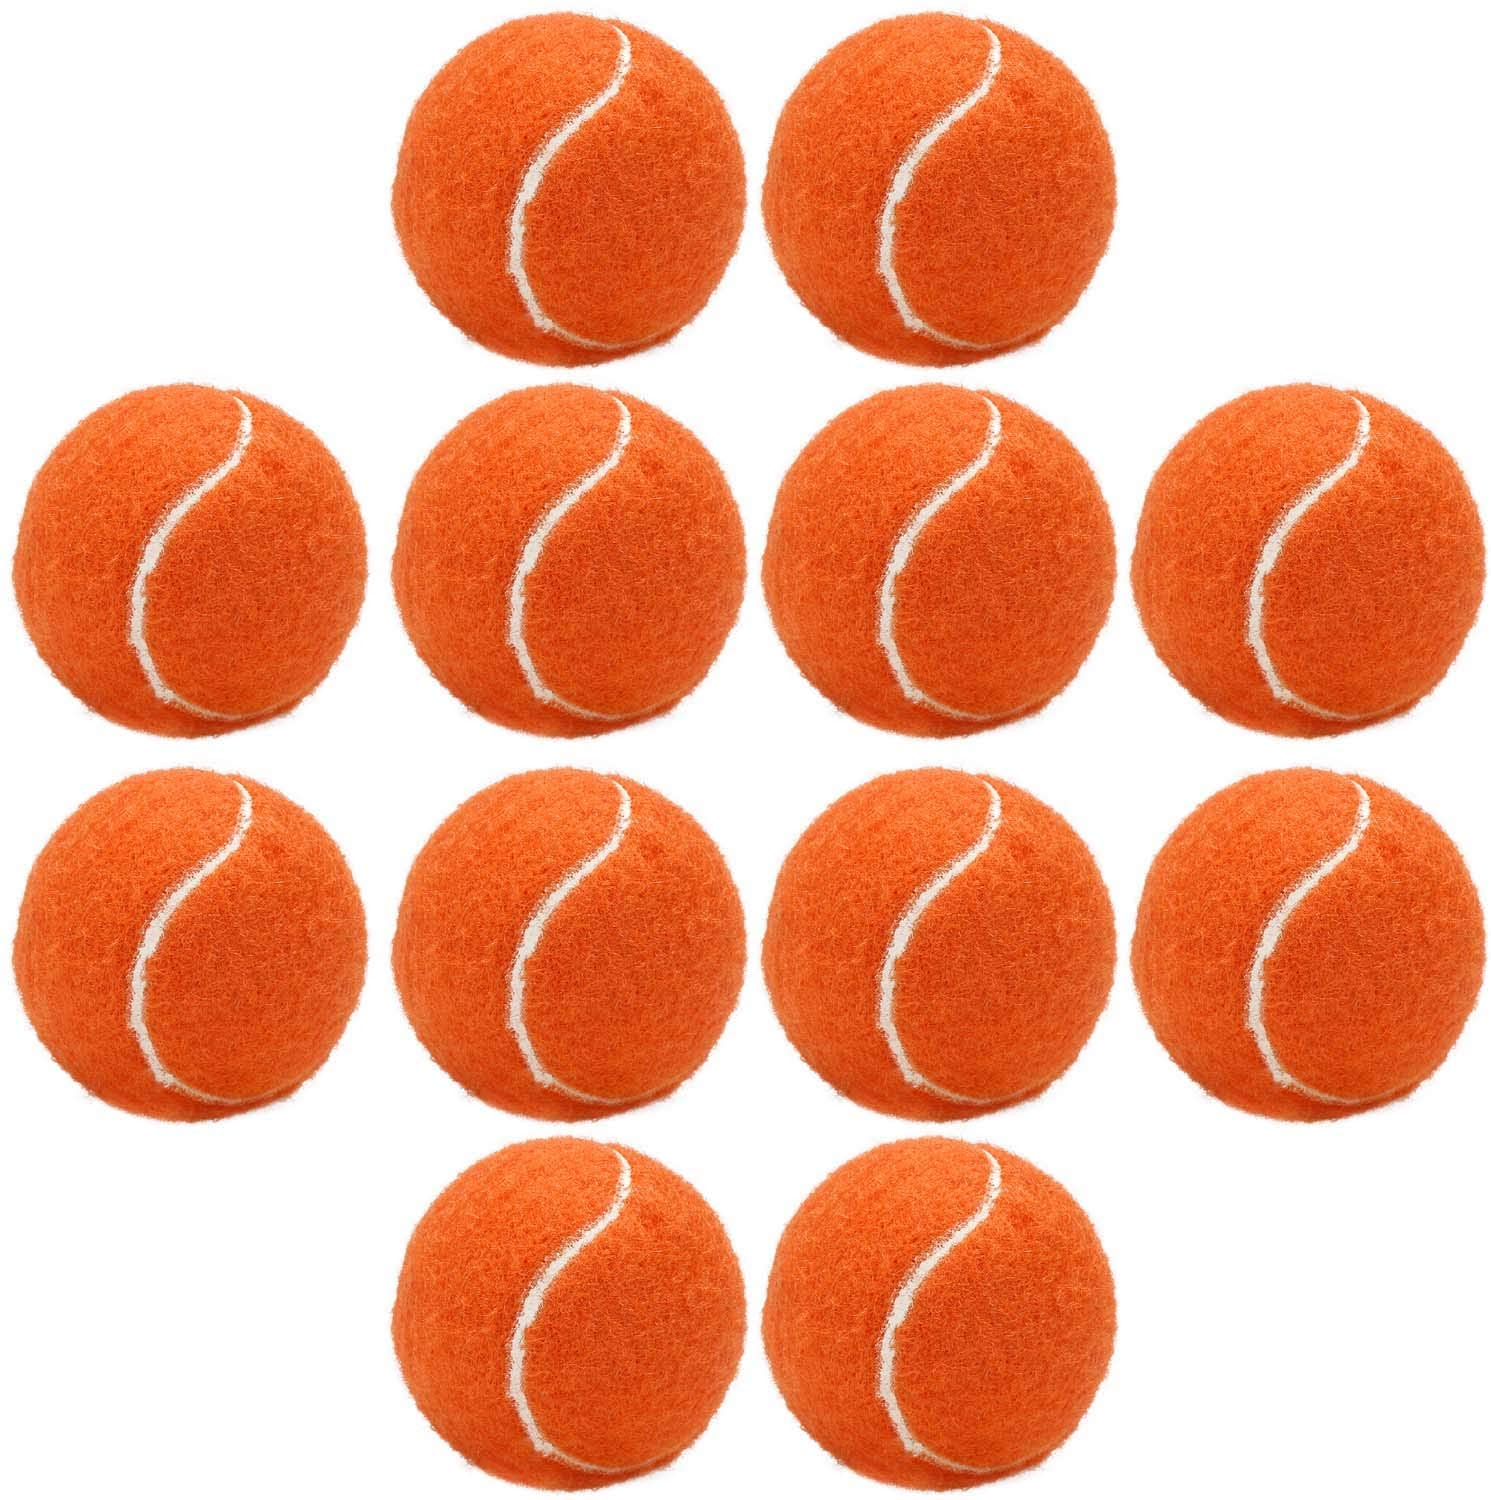 Segarty Tennis Balls for Dog, 12 Pack 2.5inch Premium Quality Orange Bouncy Ball Toy for Puppy Training, Play, Thrower, Outdoor Sports, Exercise & Fetch